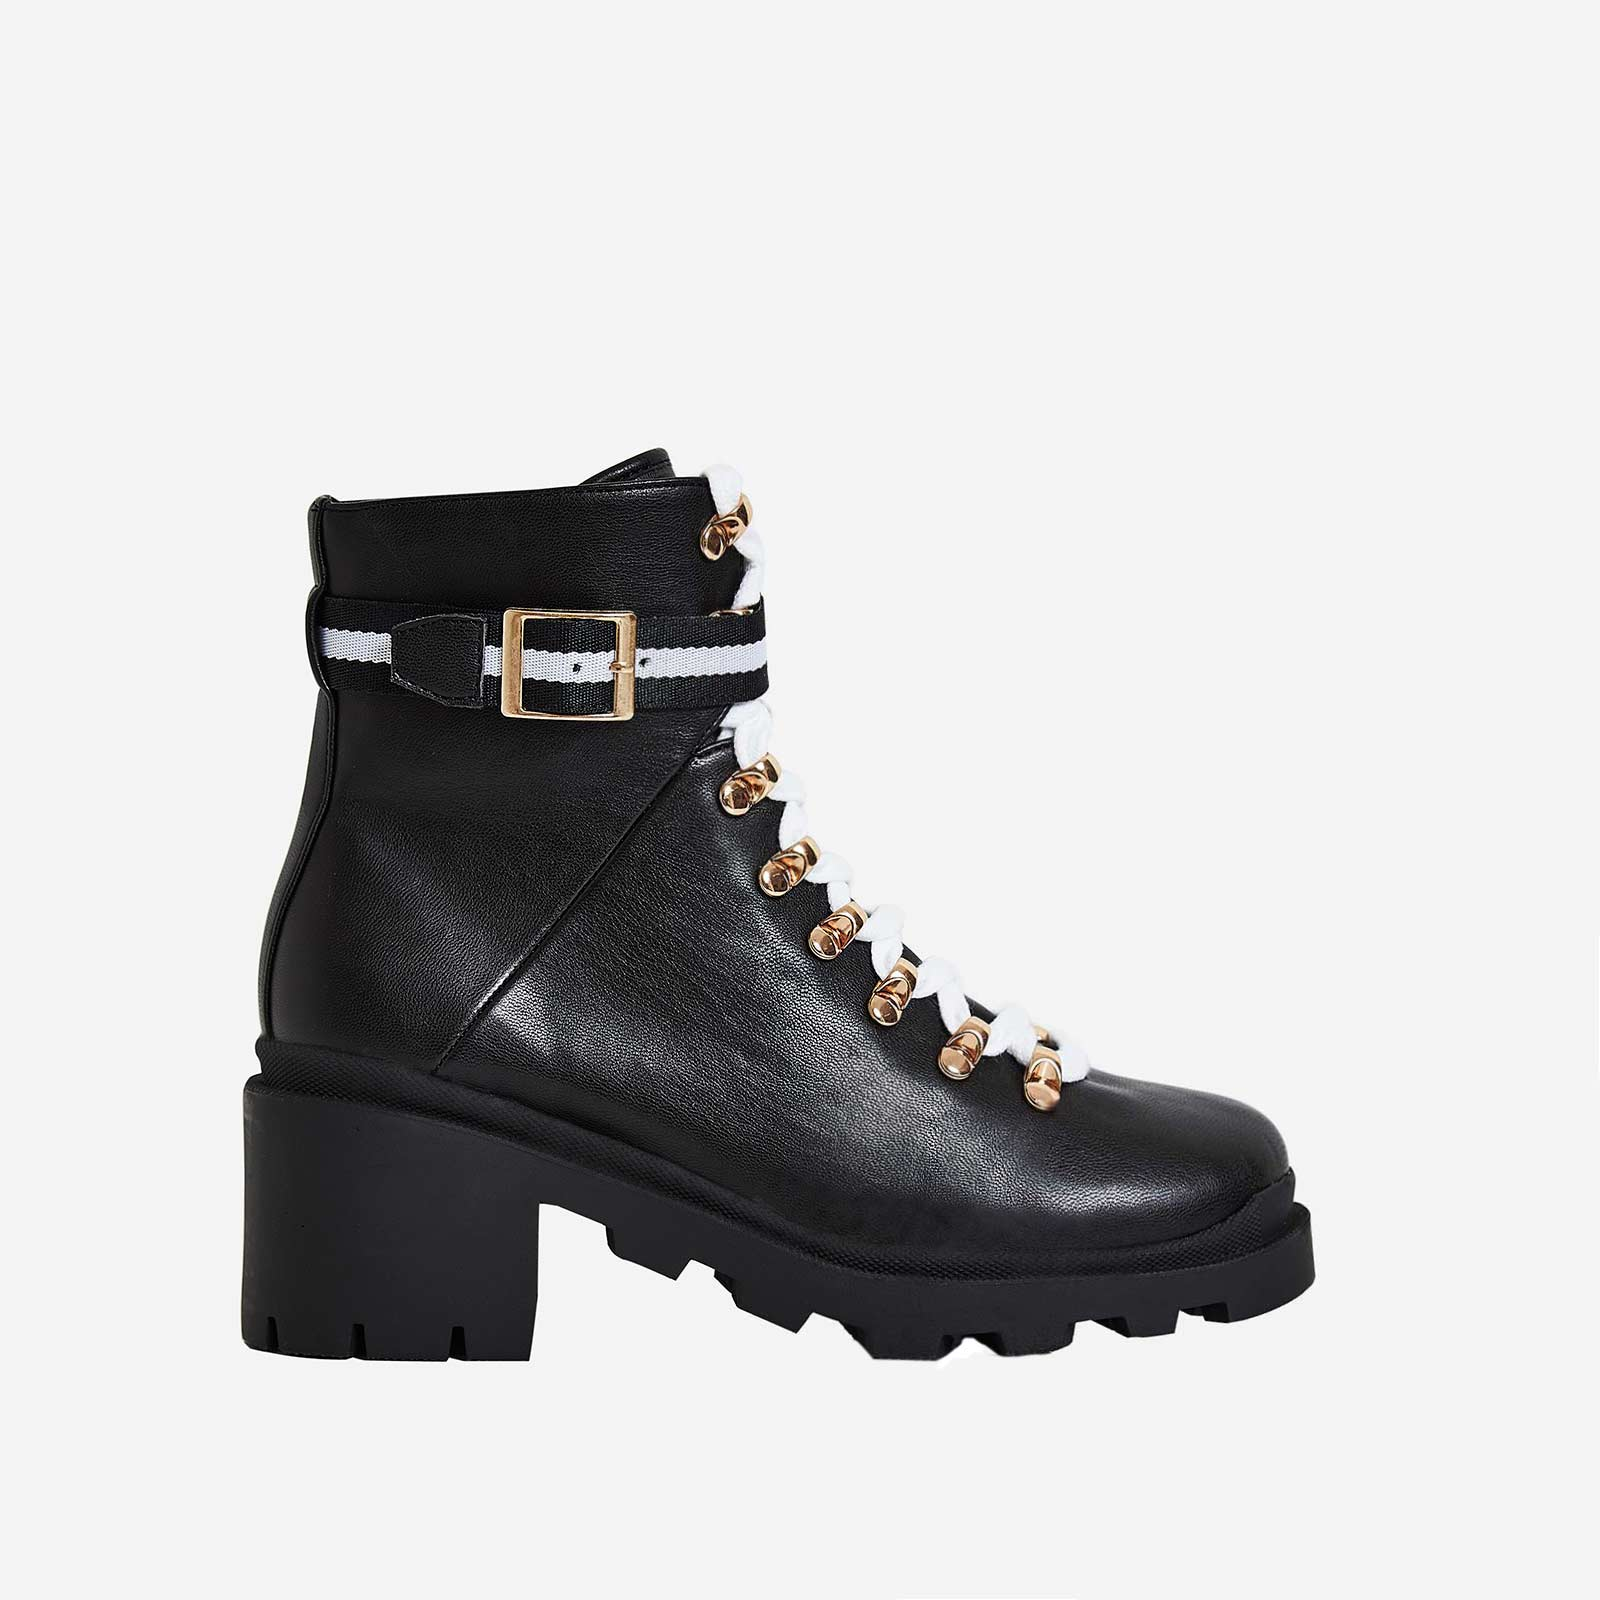 Mosley White Lace Up Block Heel Ankle Bike Boot In Black Faux Leather